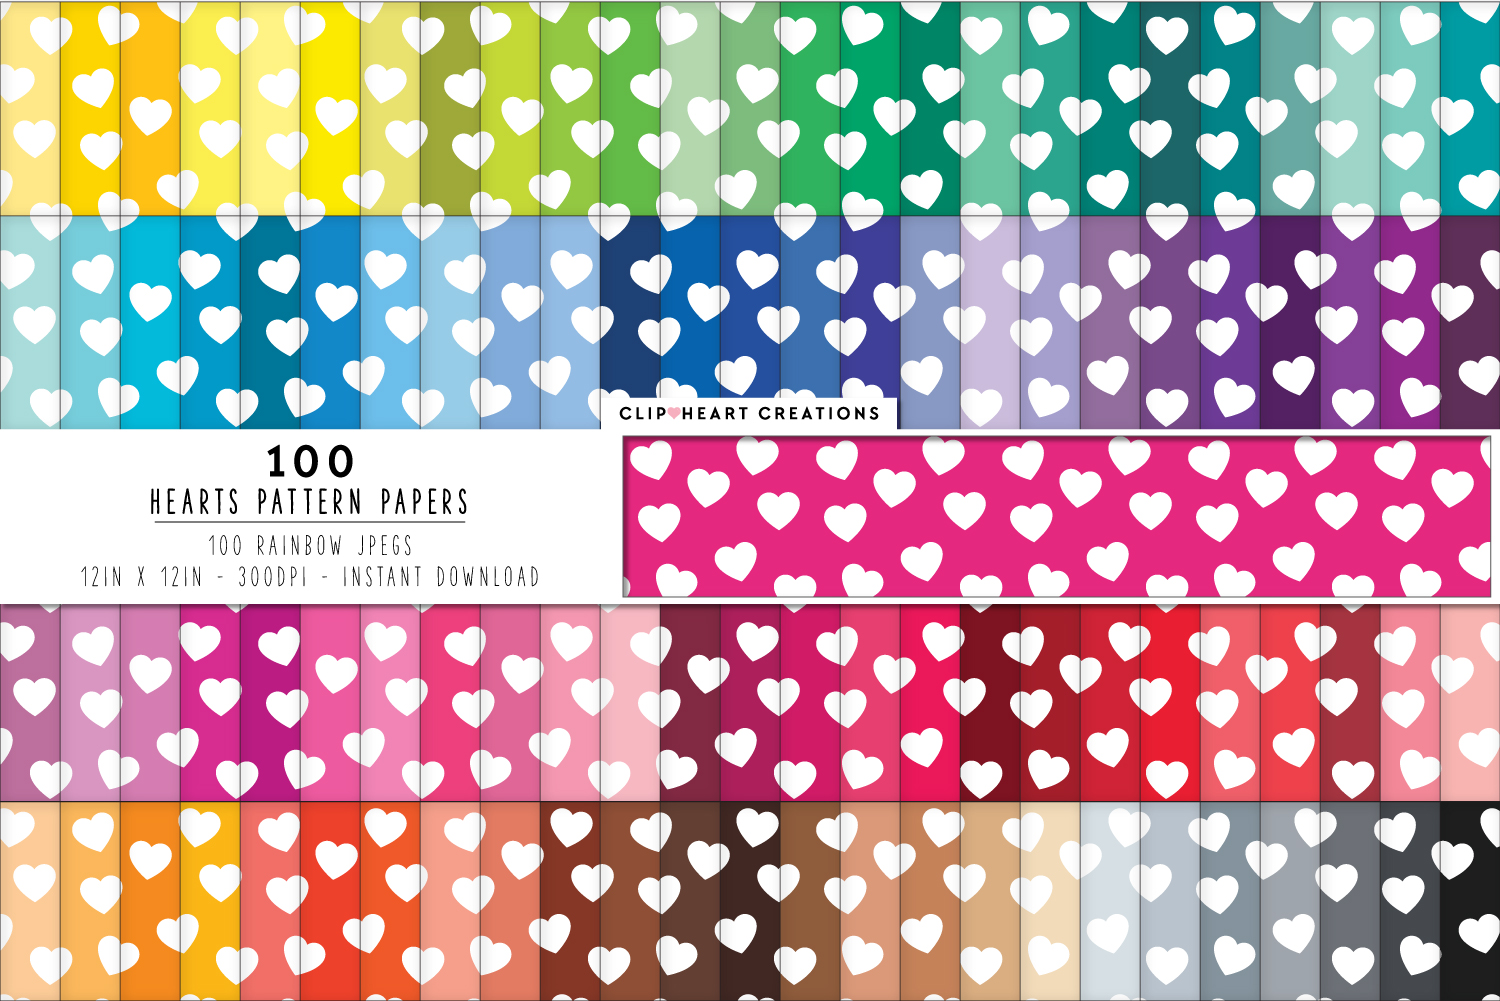 Download Free 100 Hearts Pattern Papers Graphic By Clipheartcreations for Cricut Explore, Silhouette and other cutting machines.